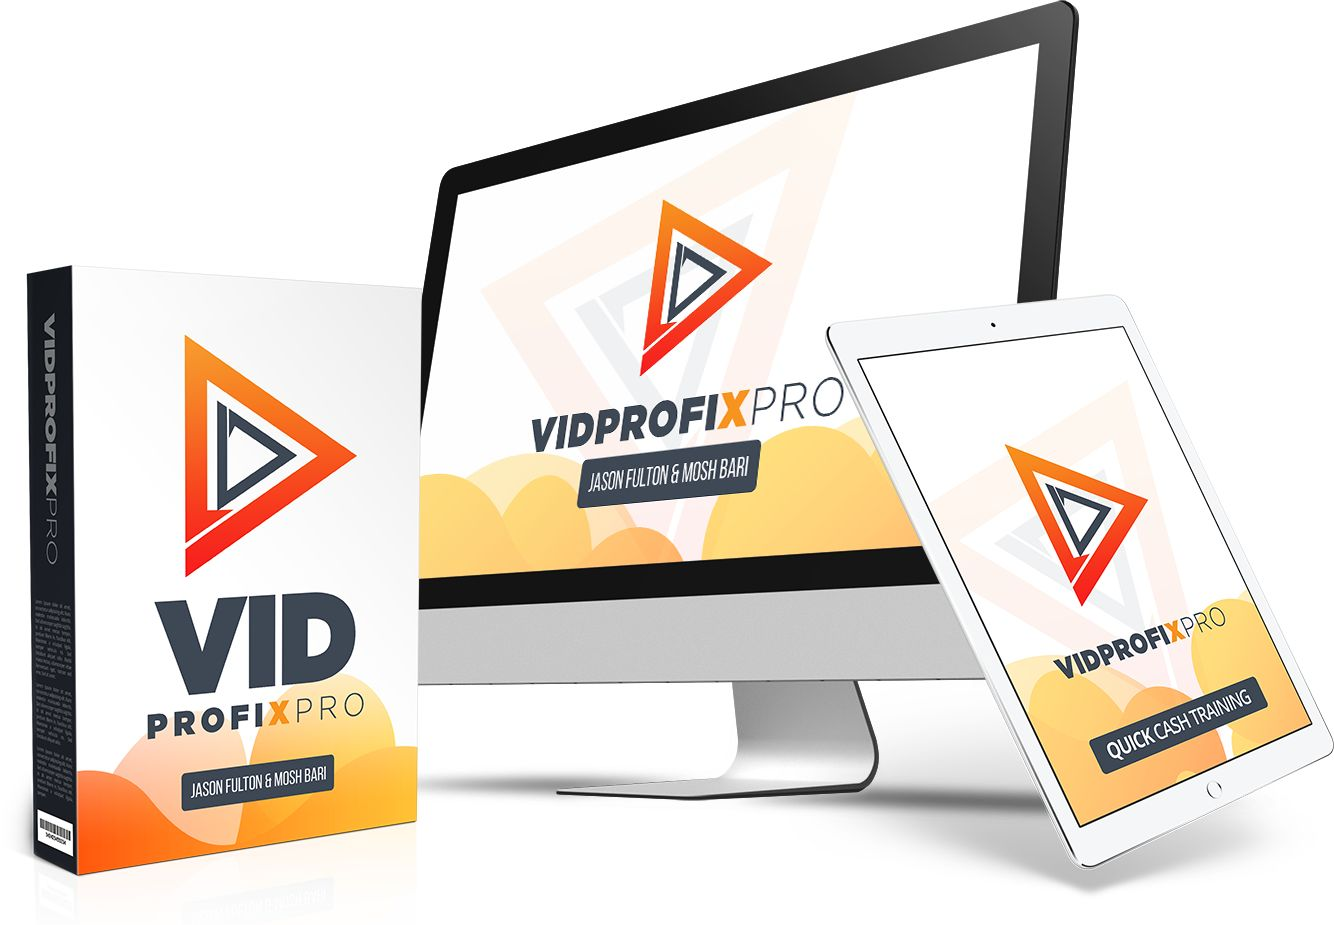 VidProfixPro Review